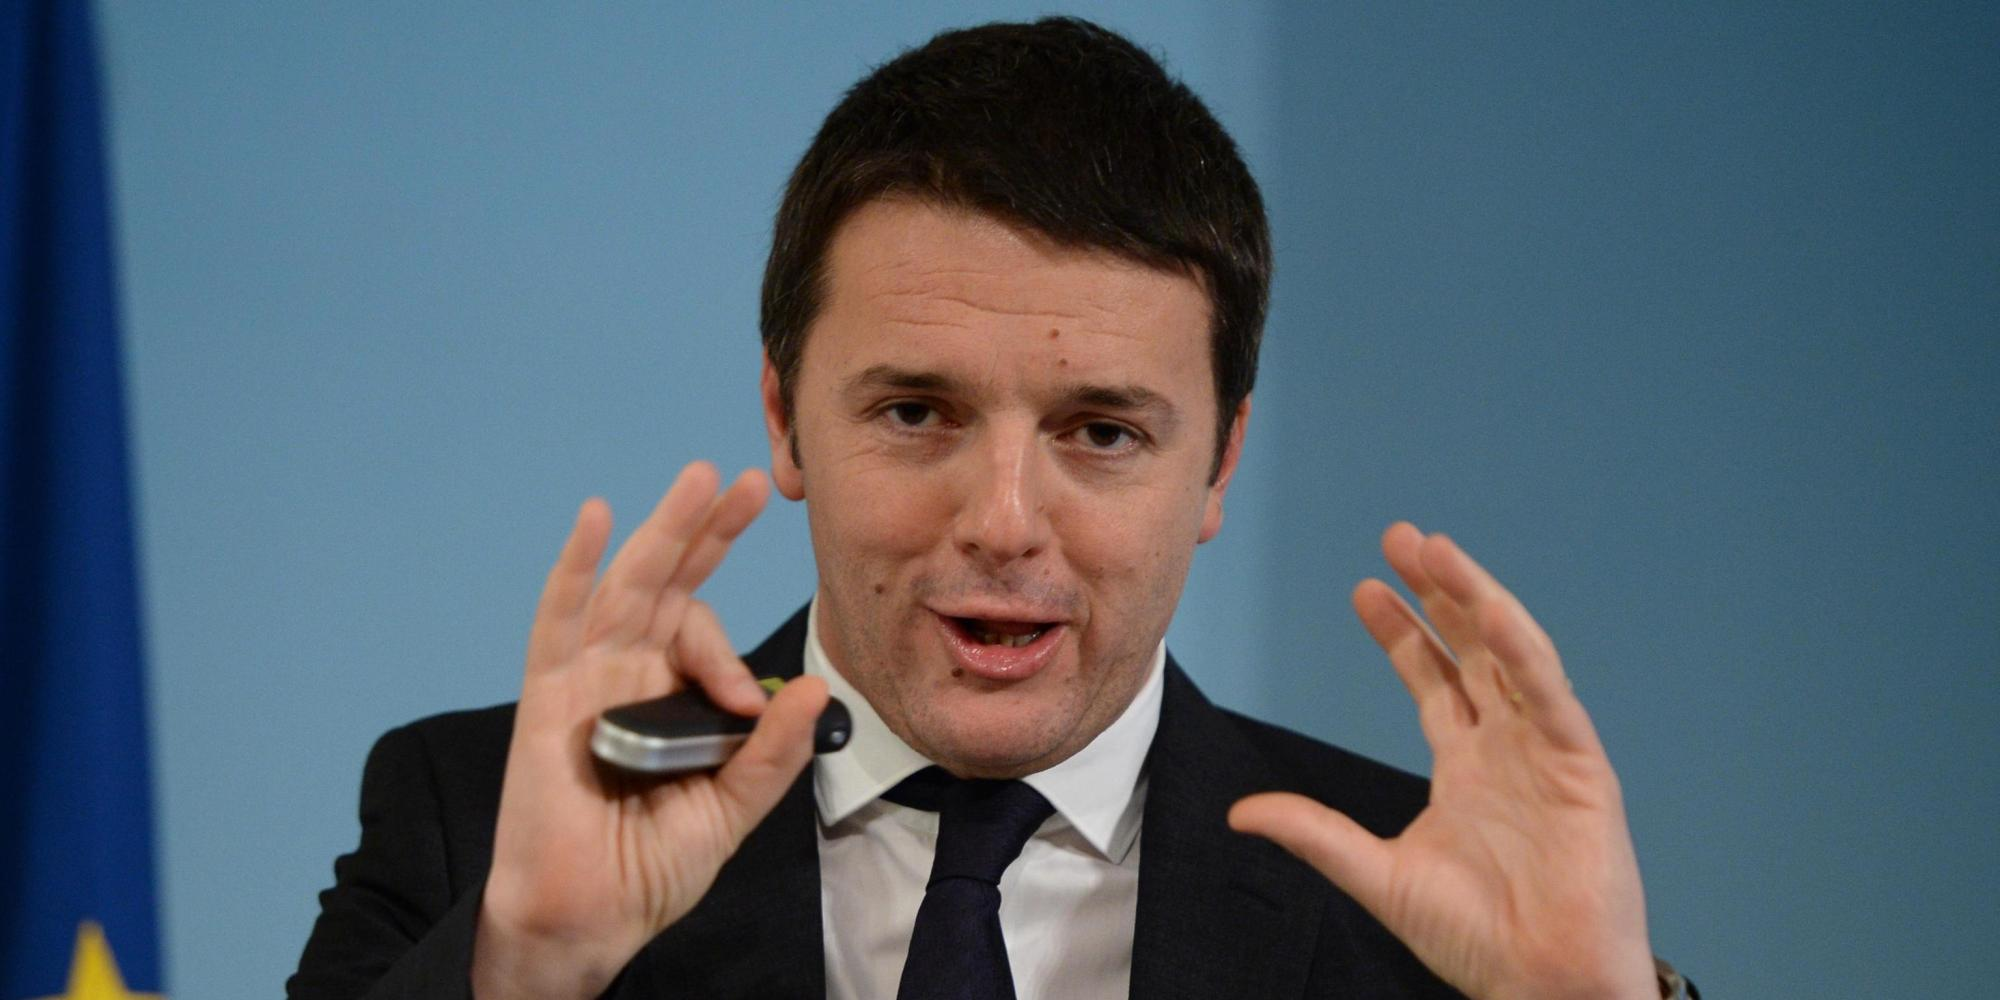 Italian premier Matteo Renzi presents tax cuts